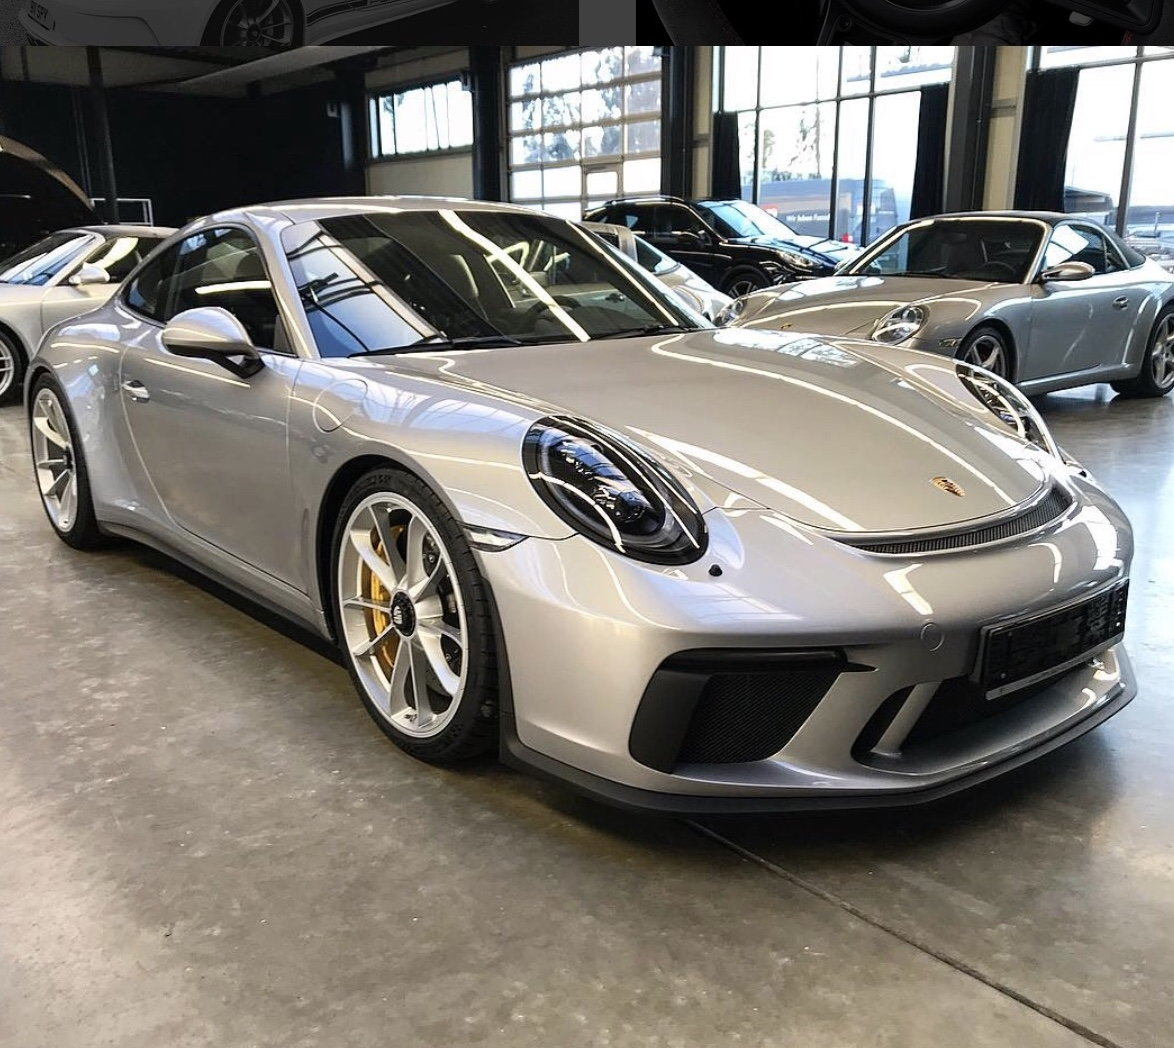 Porsche 911 Turbo Gt3: The OFFICIAL GT3 Touring Owners Pictures Thread..